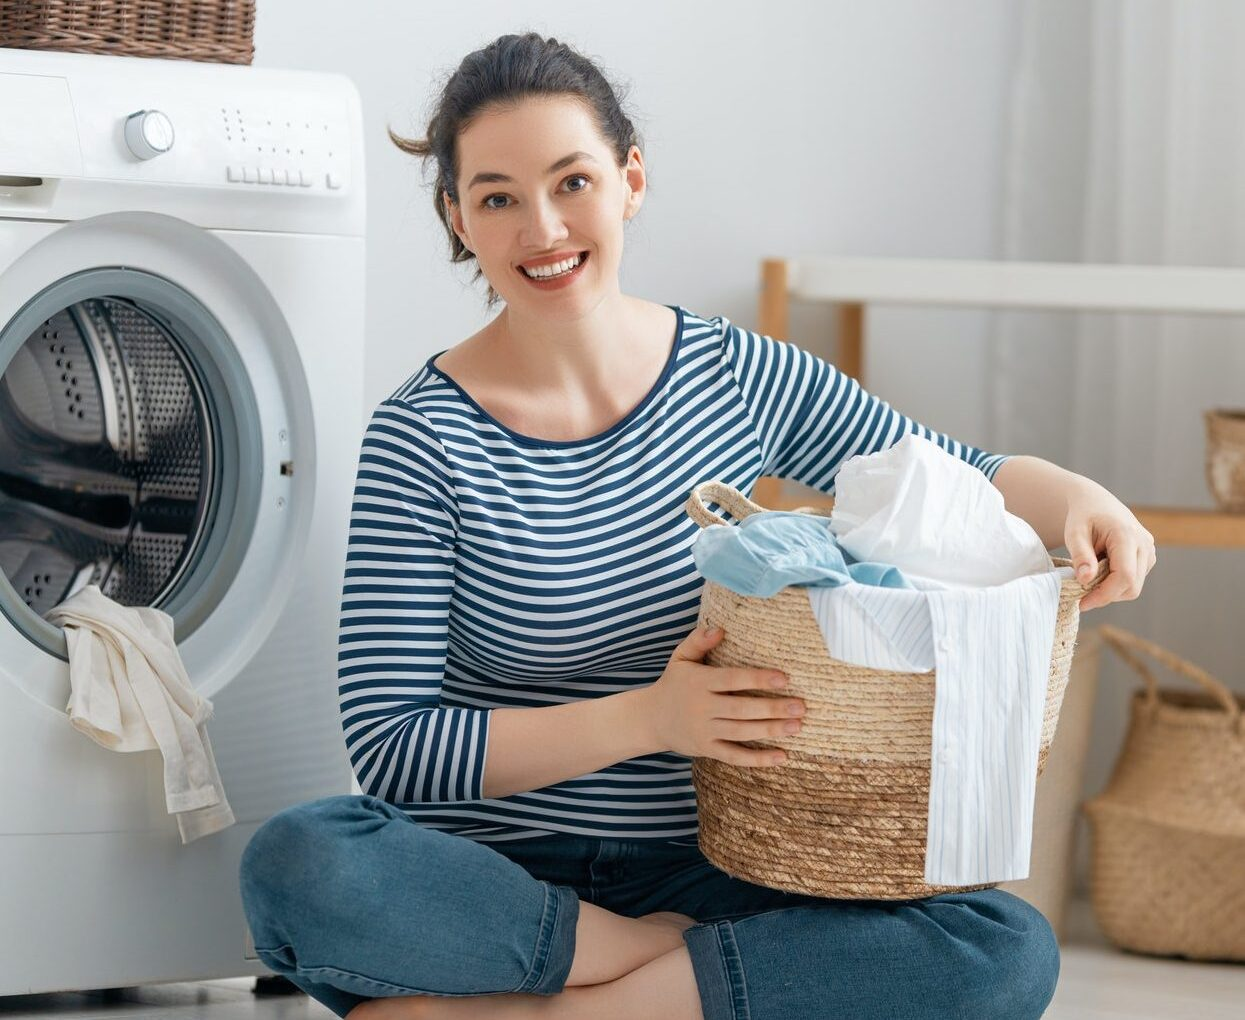 woman-is-doing-laundry-1-e1619415412517